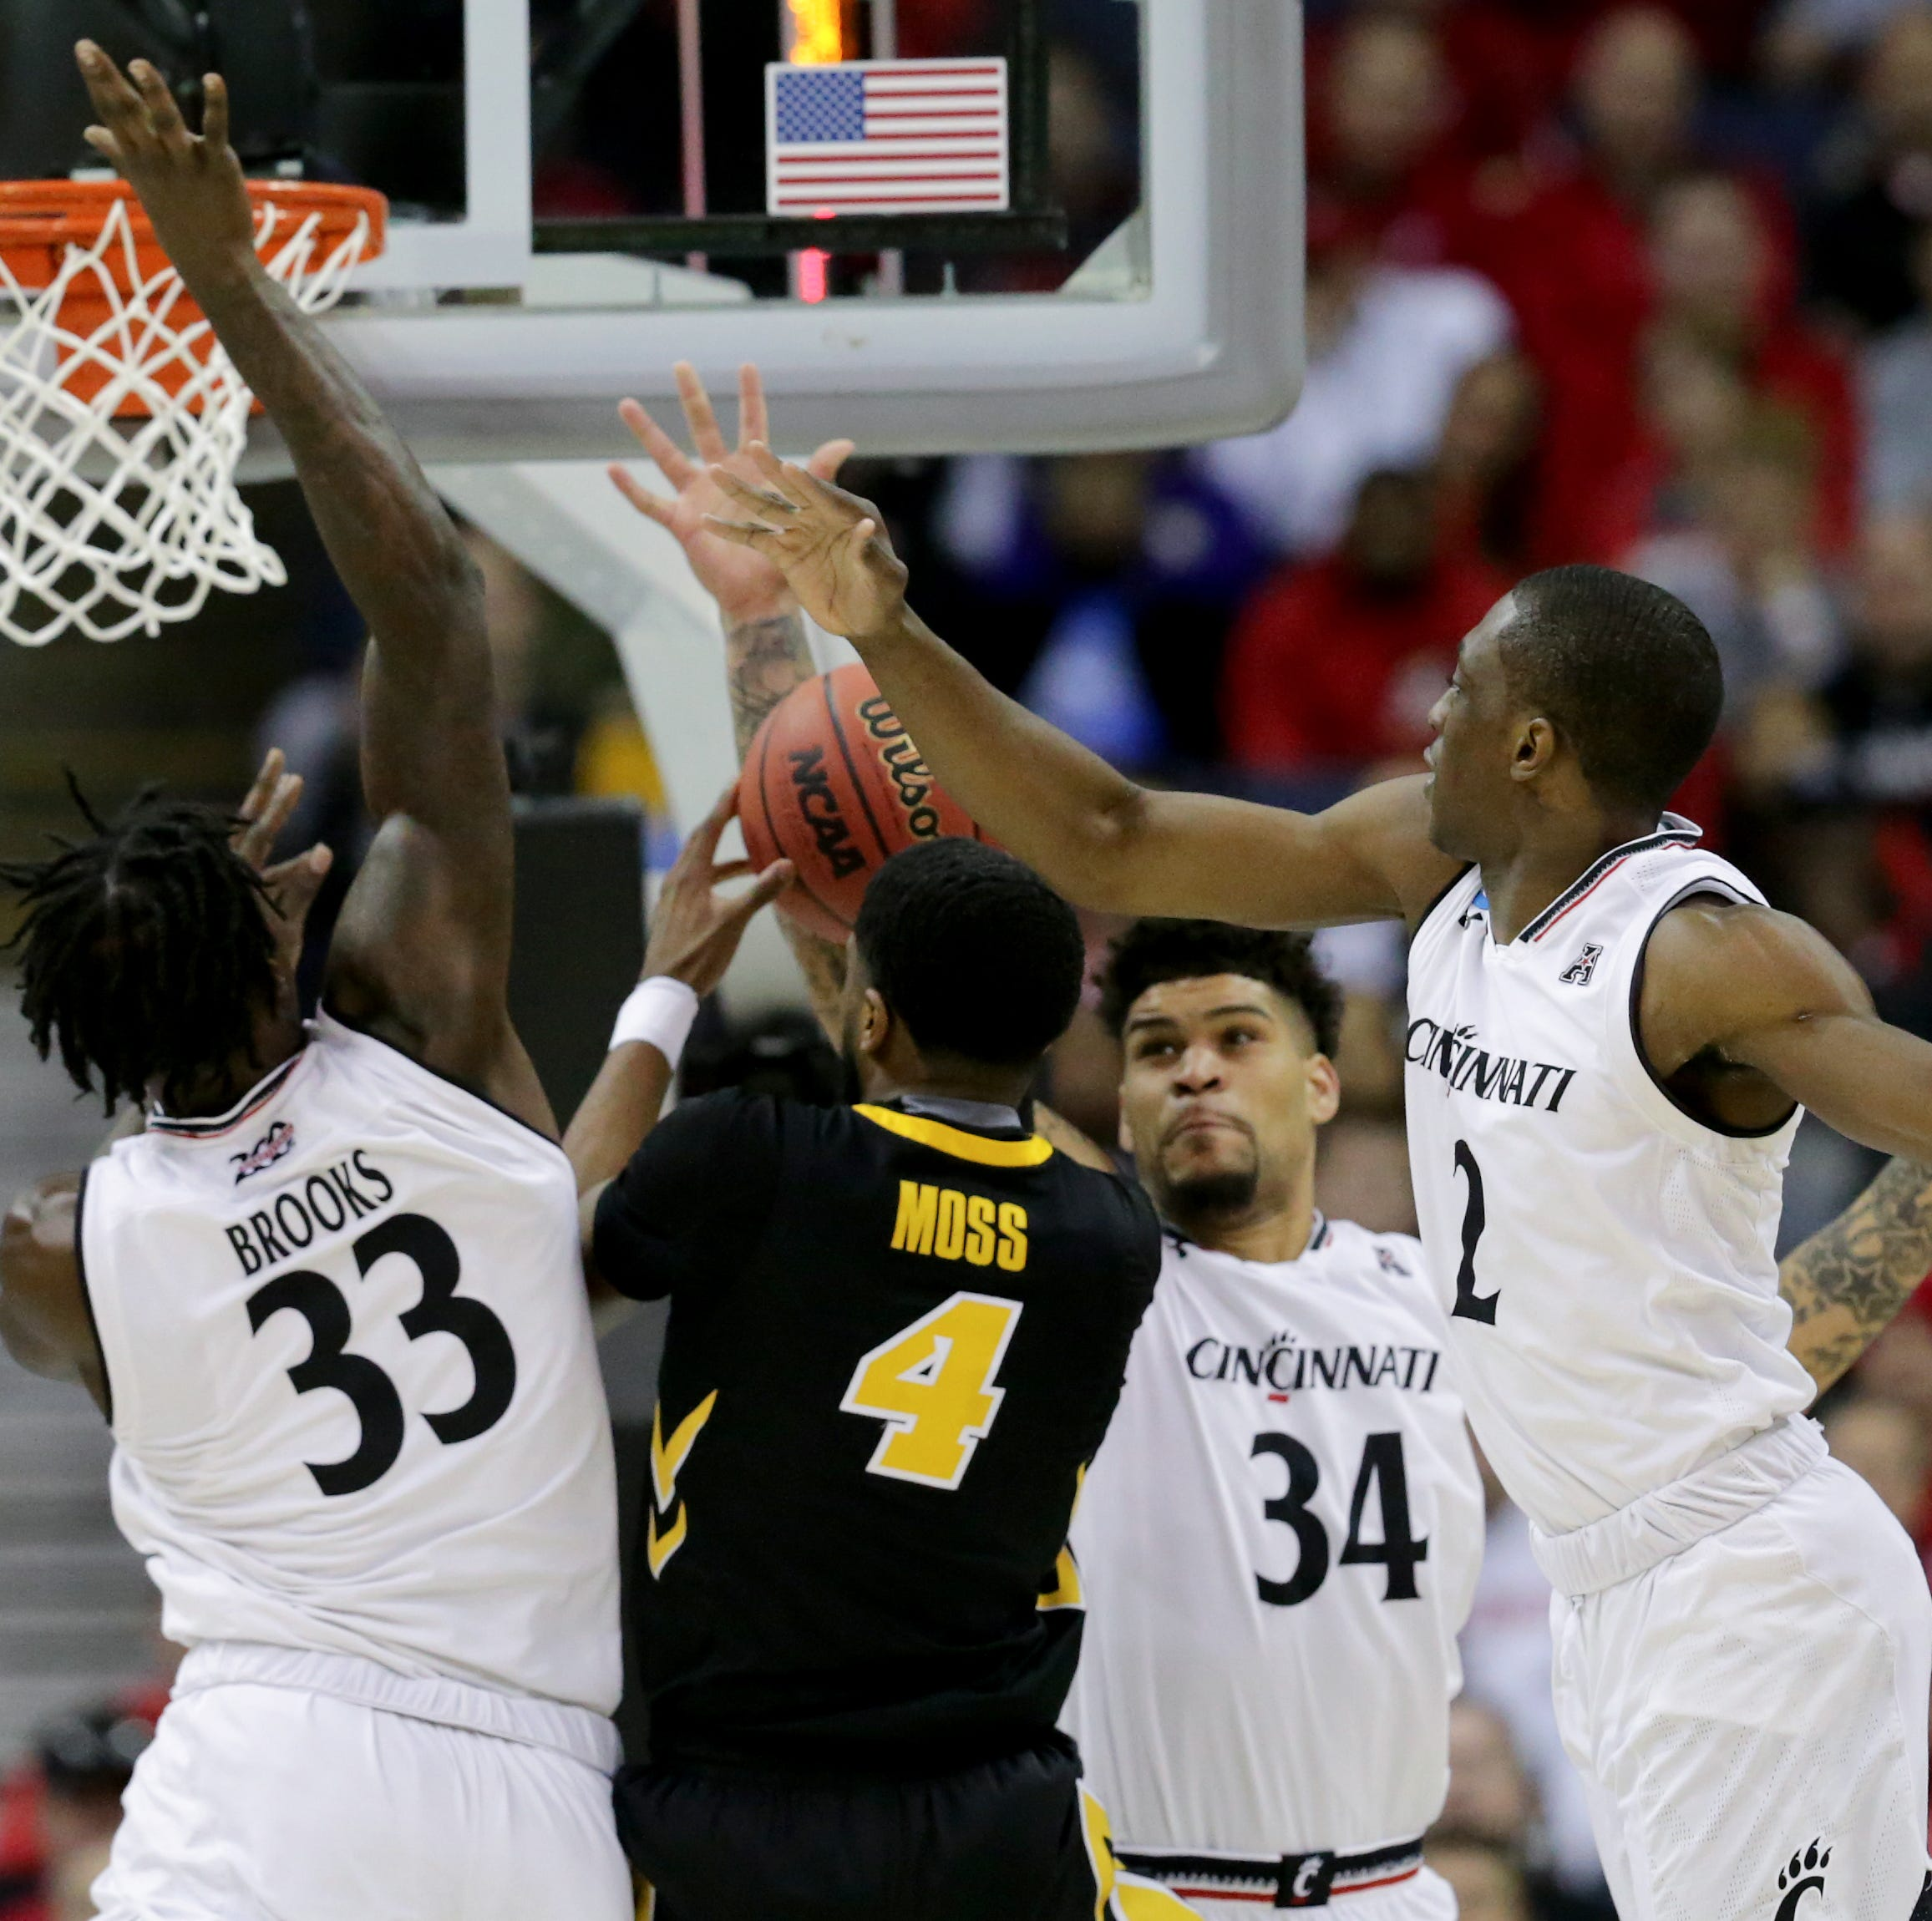 Cincinnati Bearcats show interest in Iowa grad transfer Isaiah Moss, per report